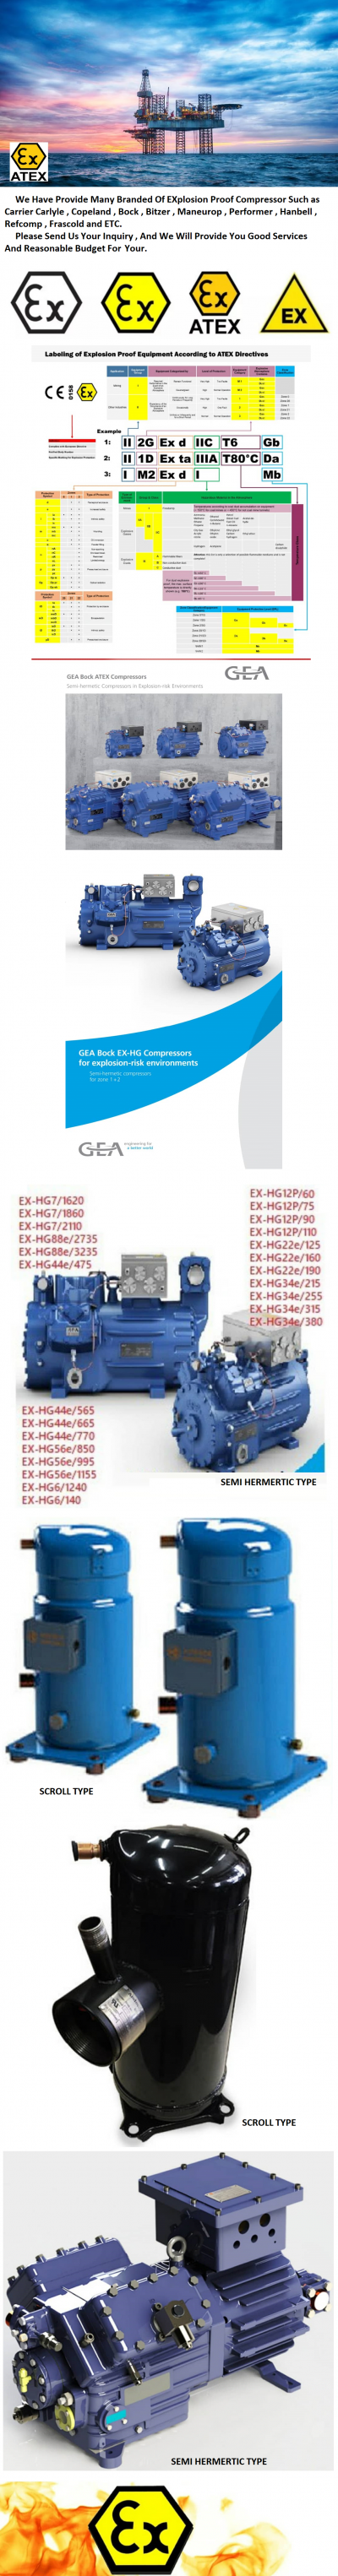 (ATEX) EXPLOSION PROOF COMPRESSOR 2